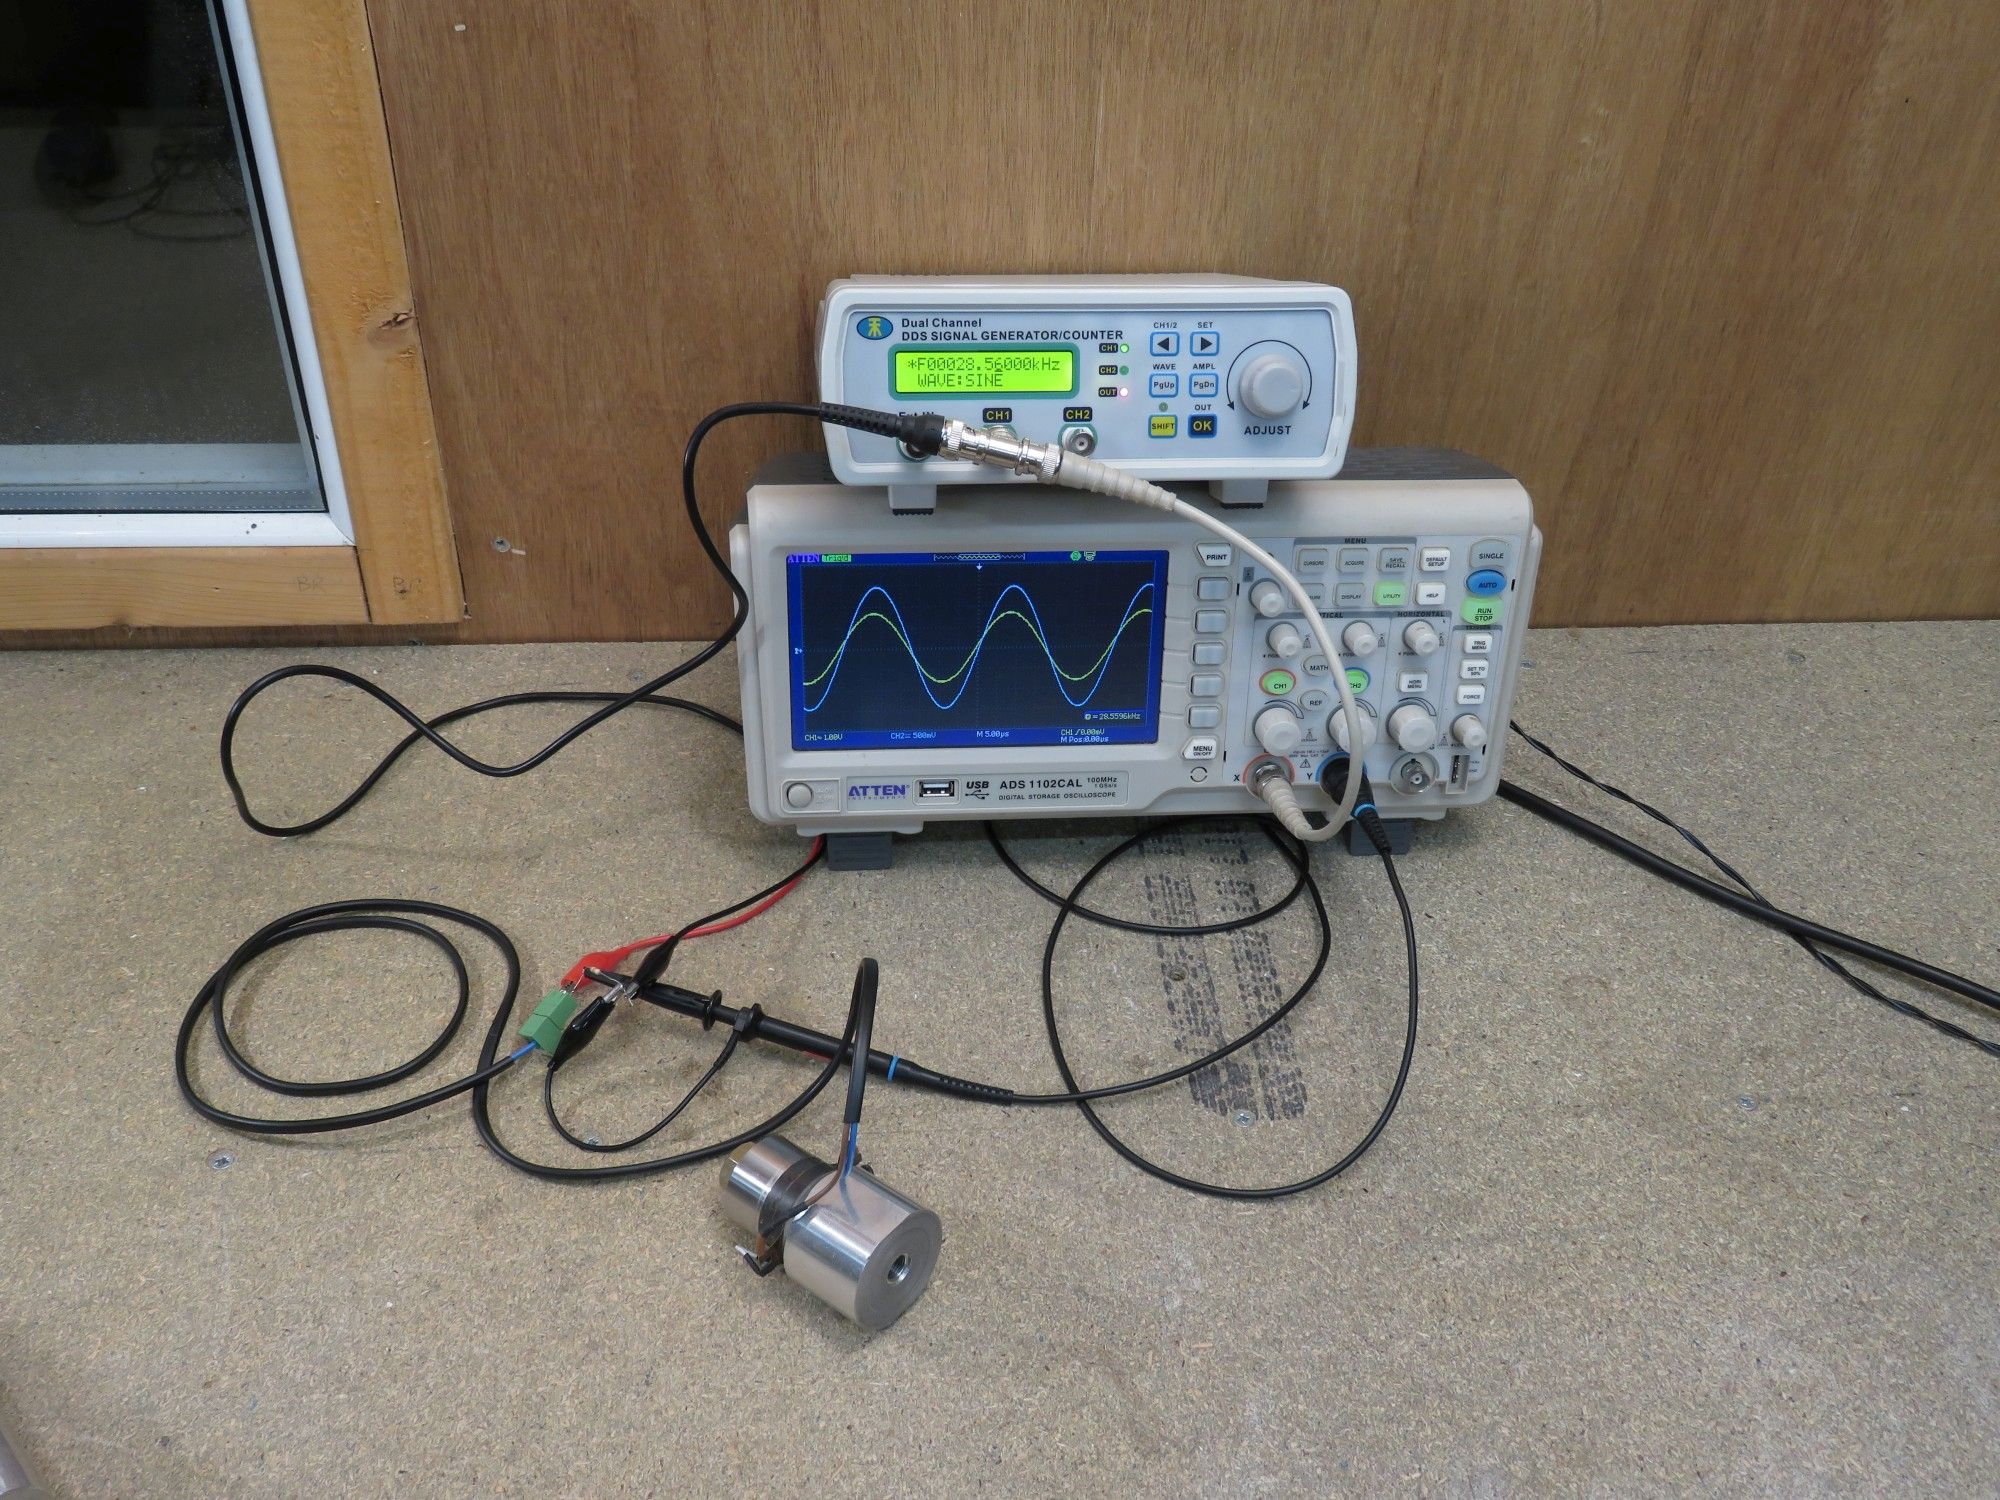 Power Ultrasonic Driver Circuitprojectscomultrasonic Oscillations Which An Error Occurred